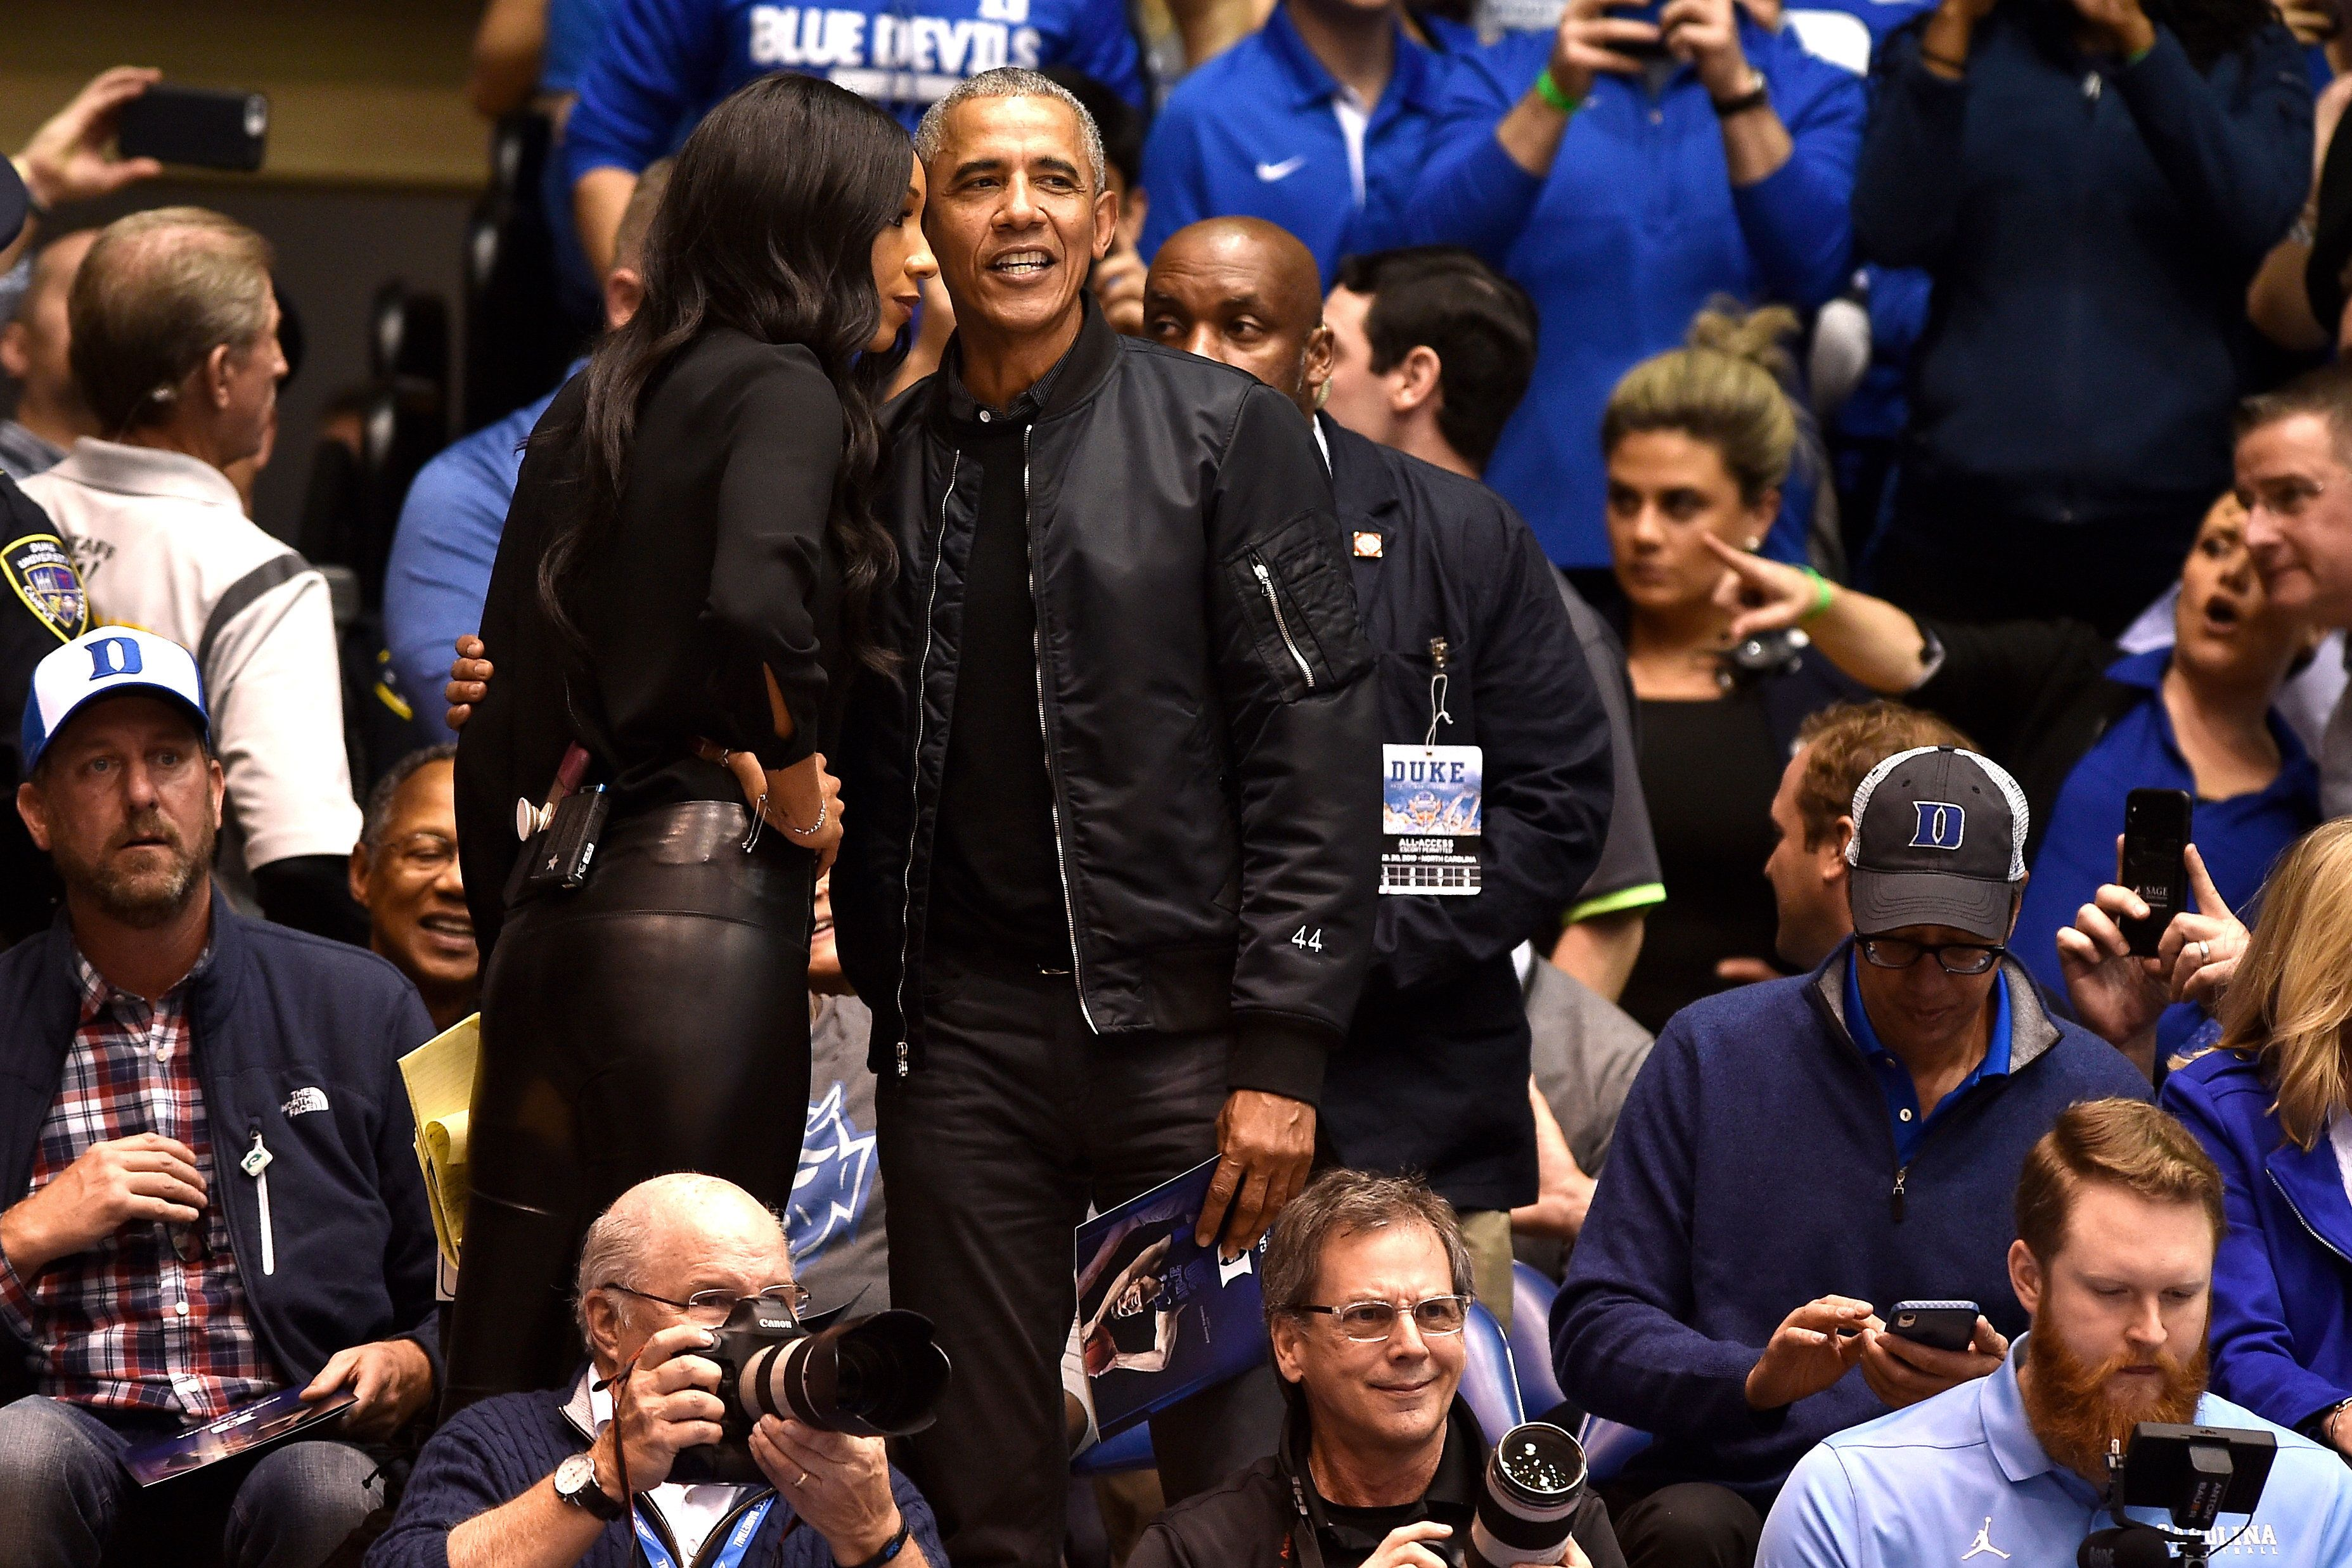 People Are Extremely Into Barack Obama's Bomber Jacket With '44′ On The Sleeve